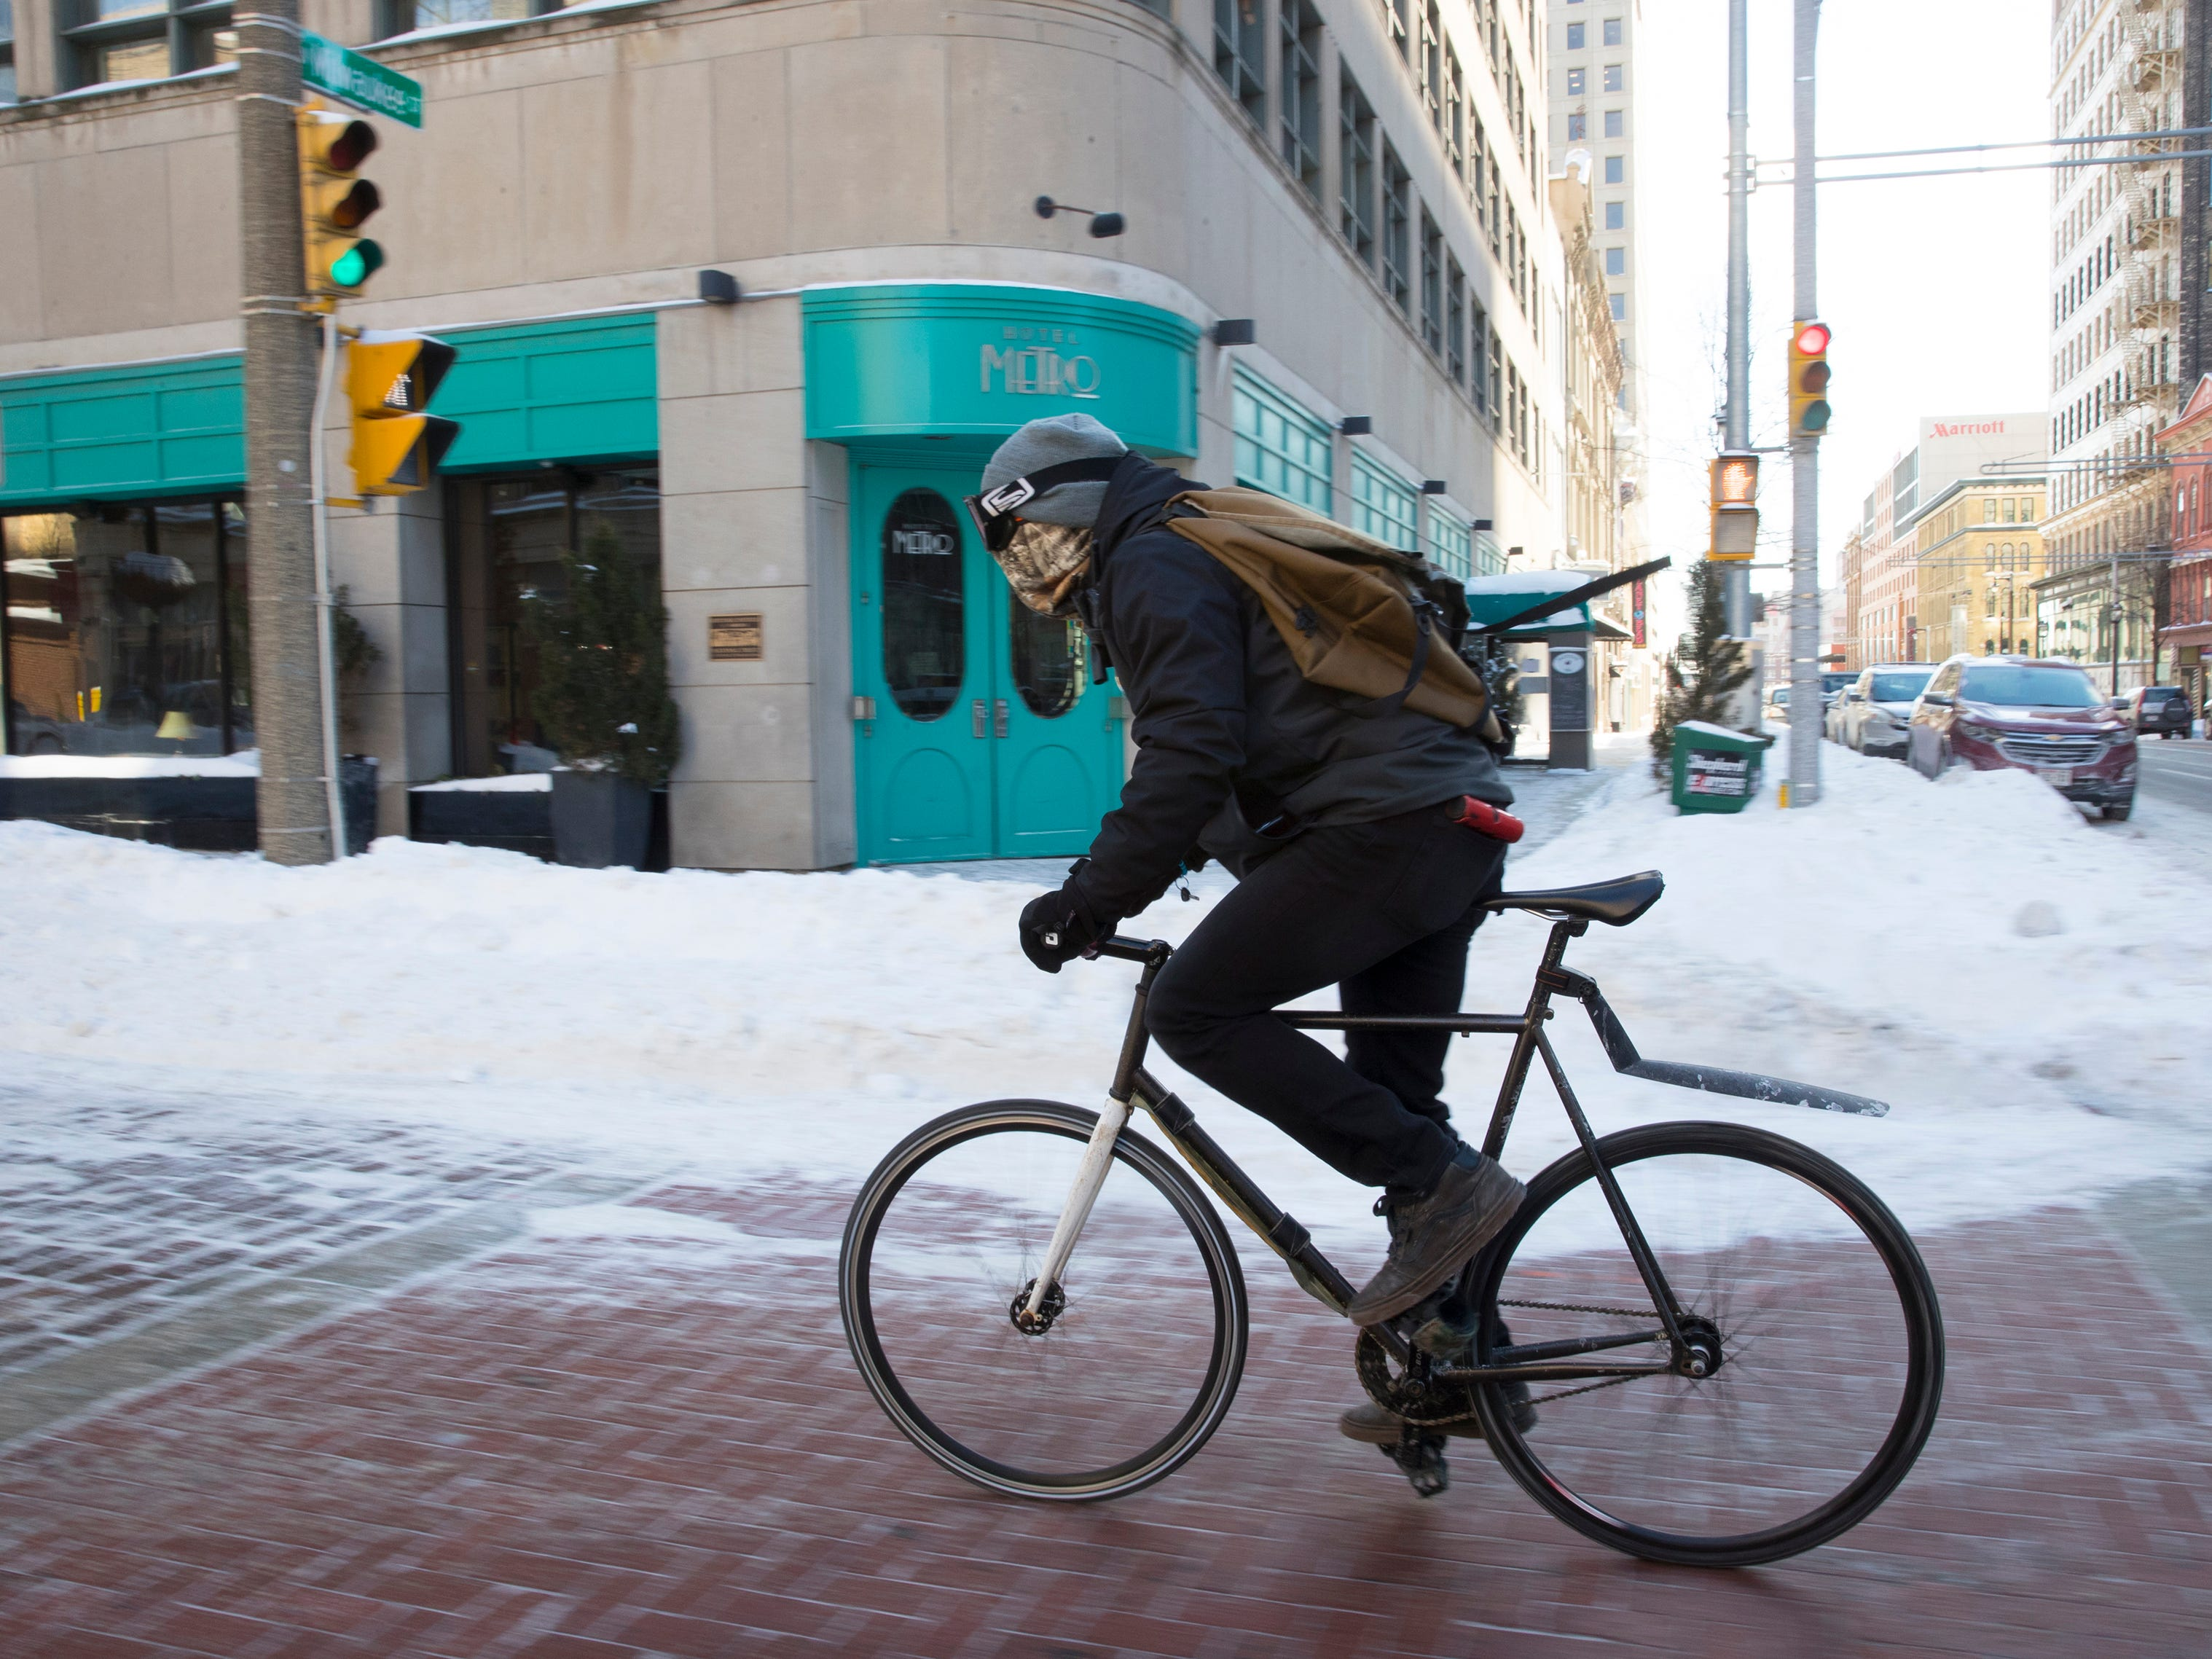 Breakaway Bicycle Courier messenger Corey Wolf was still at work making deliveries despite the frigid weather in downtown Milwaukee, Wis.